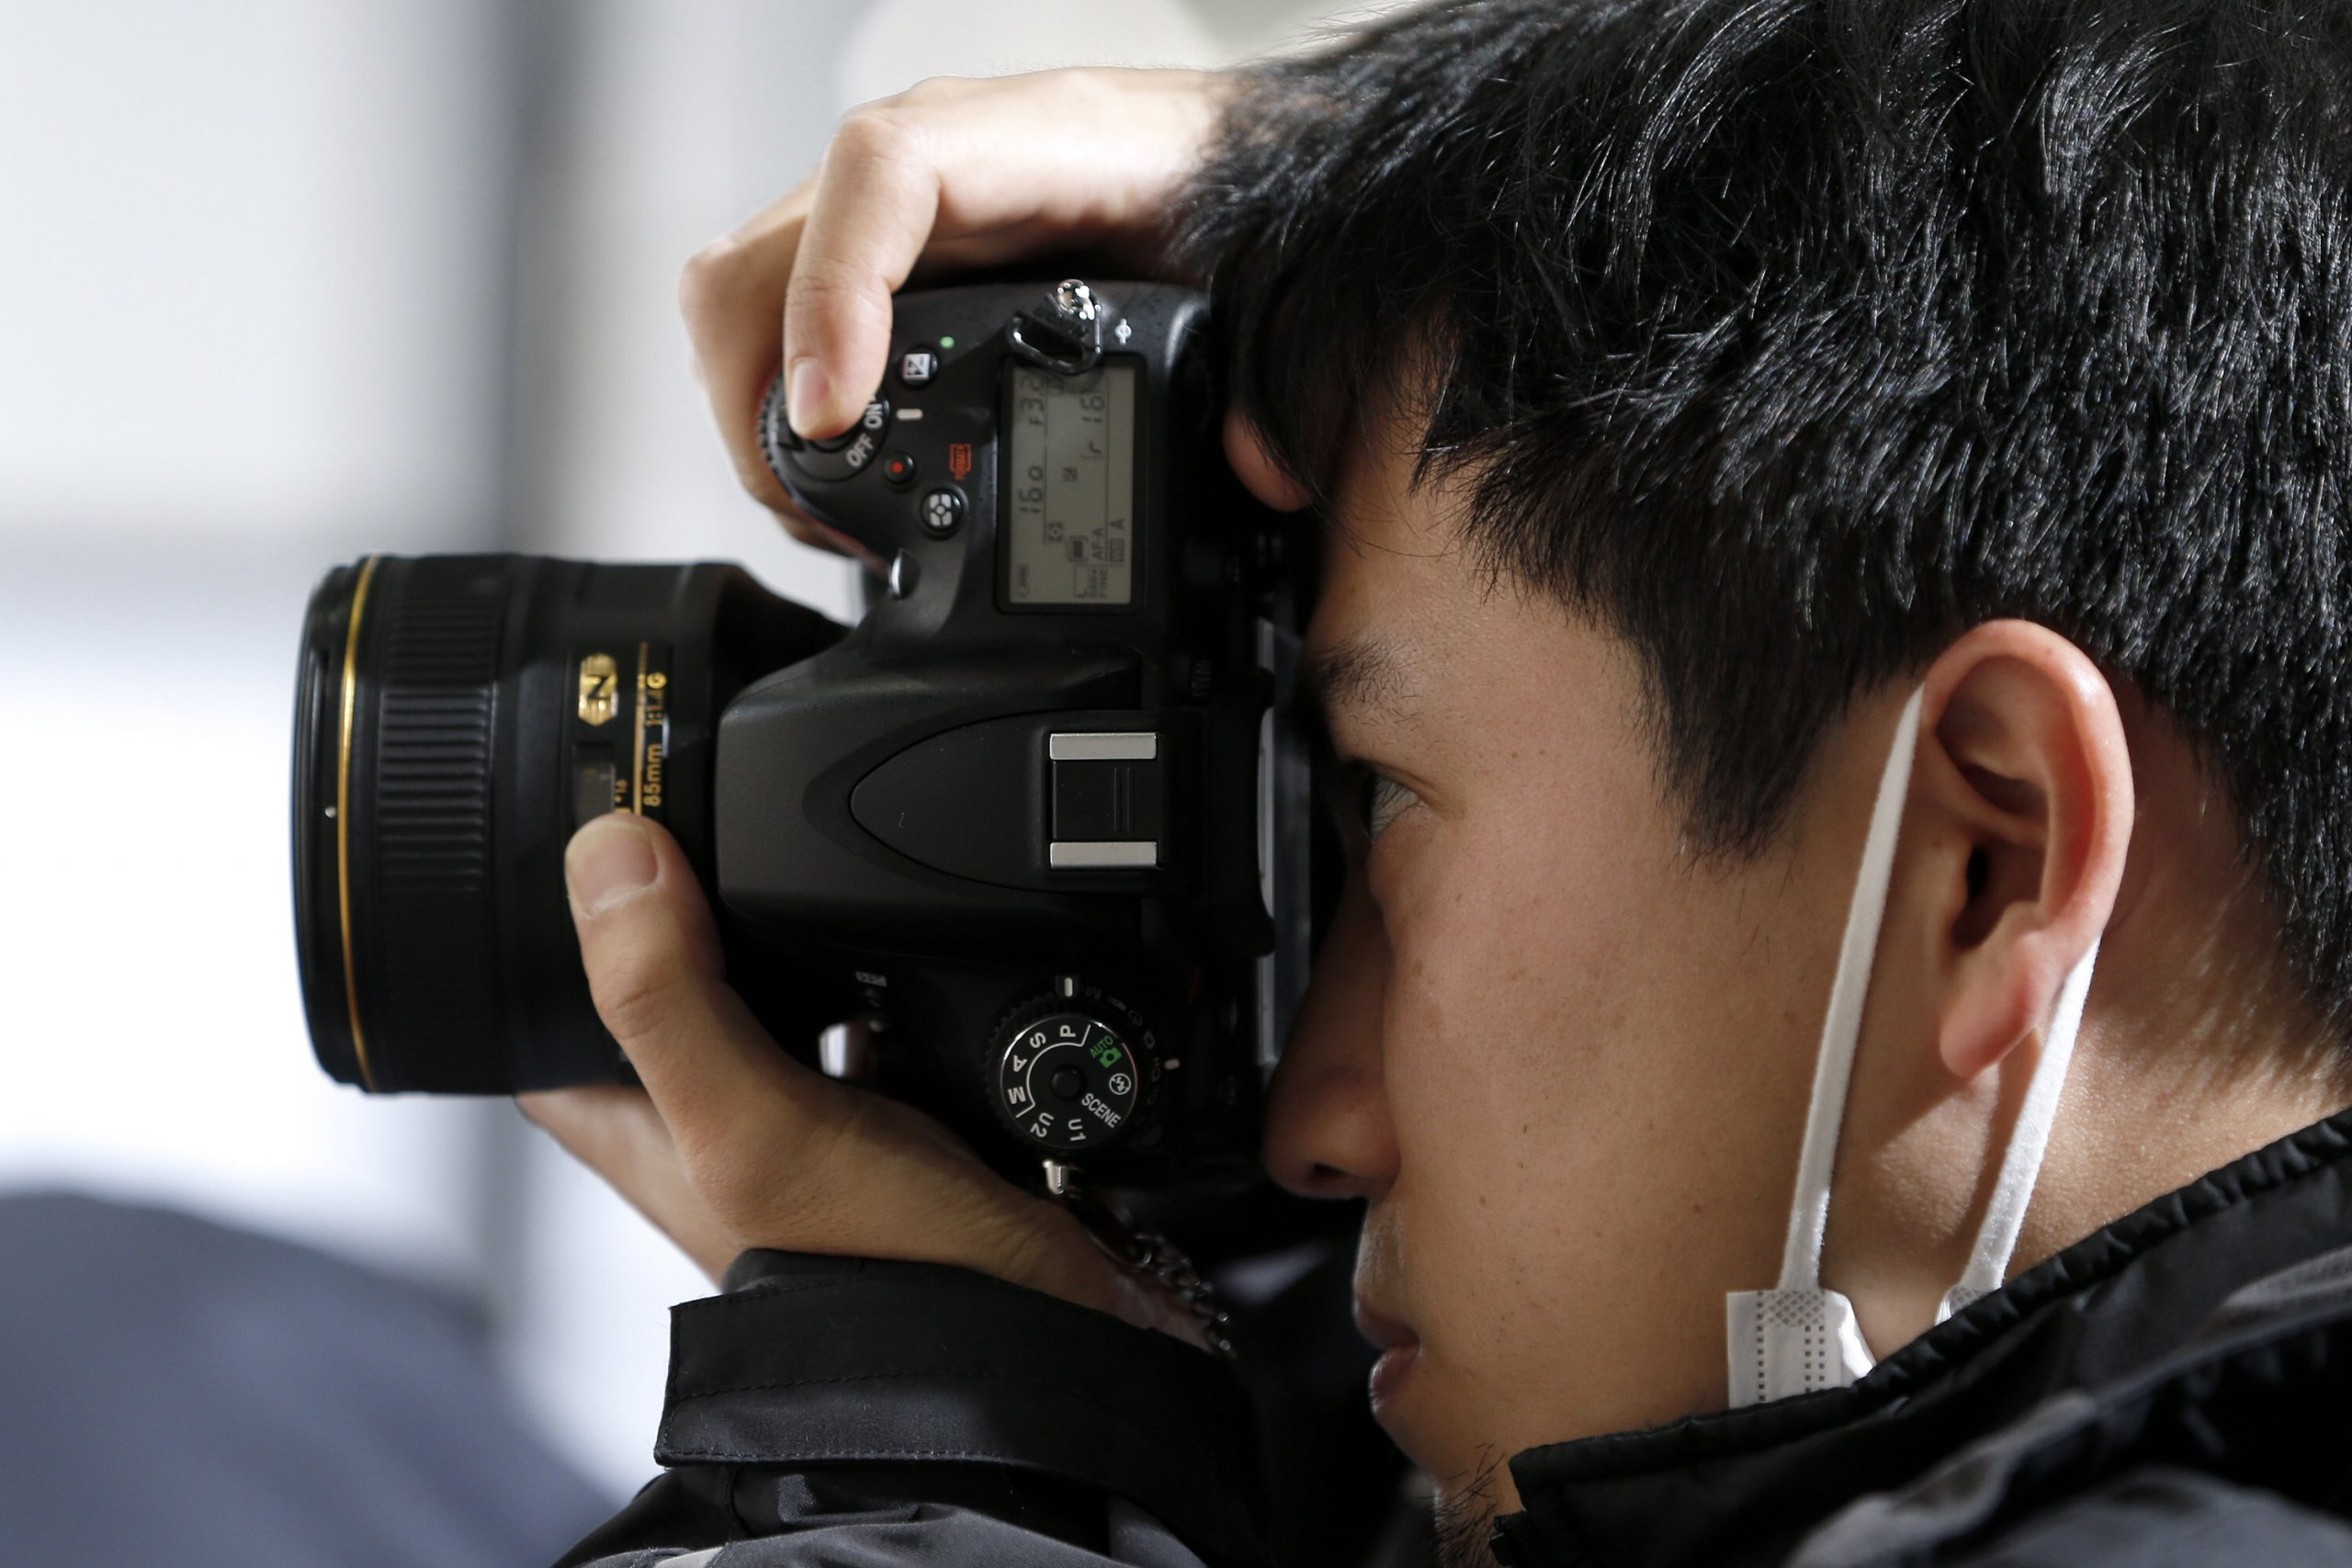 A close up of a person holding a camera